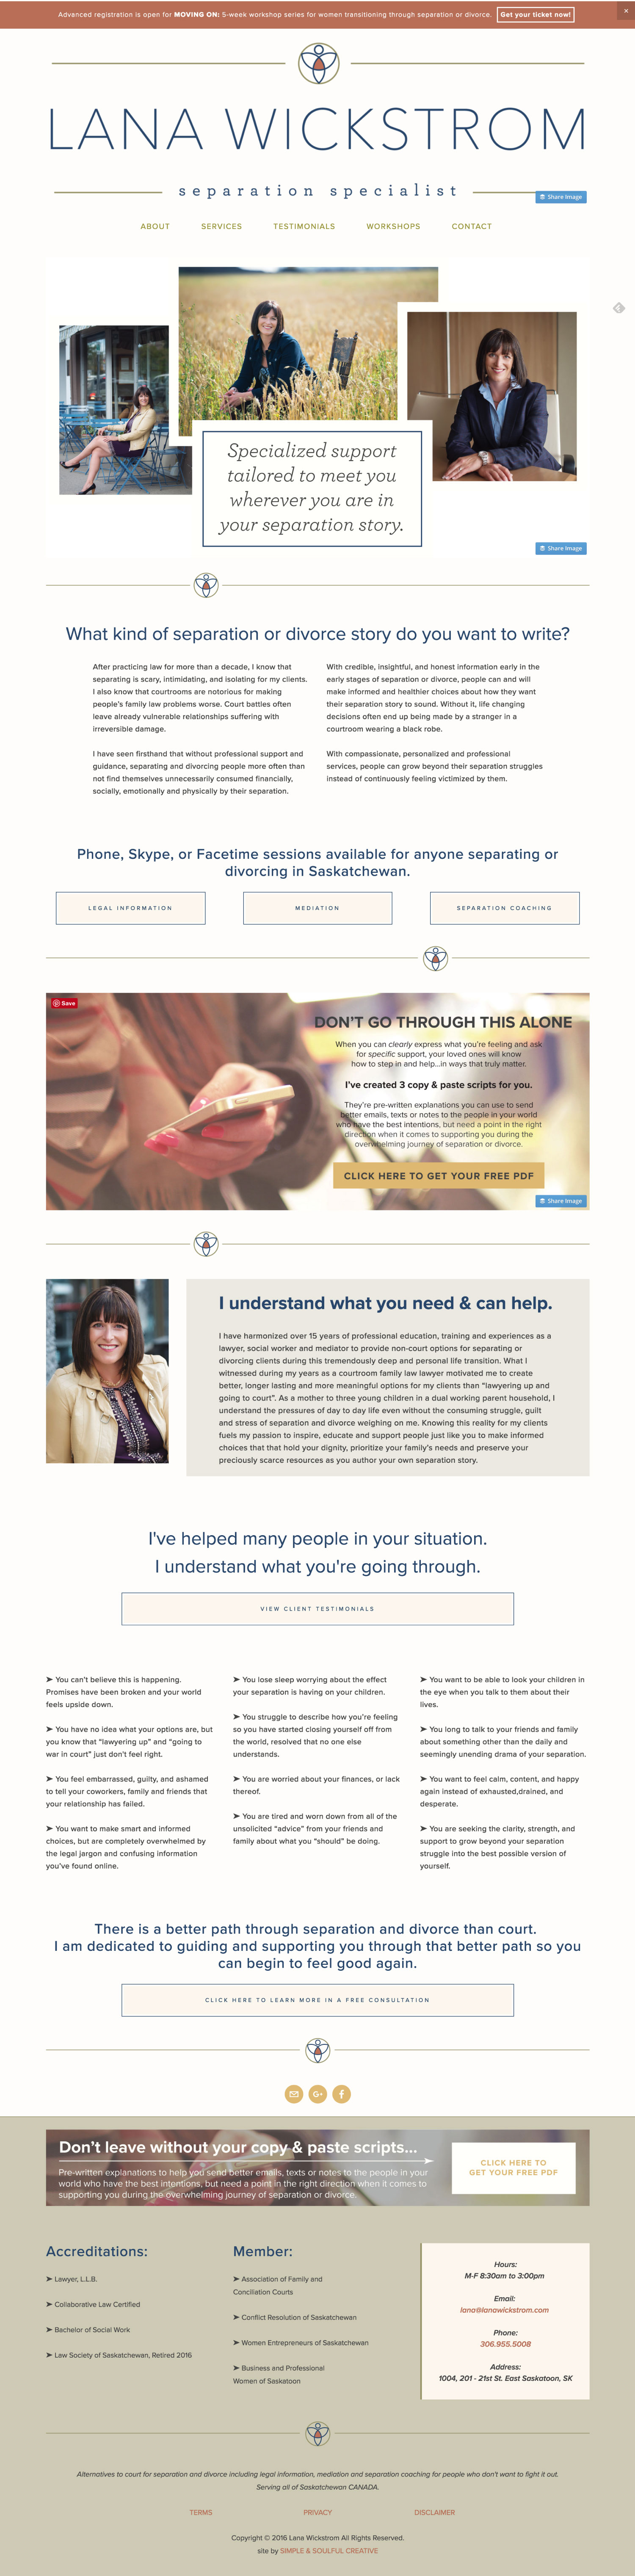 Website design for Lana Wickstrom. By Simple & Soulful Creative.